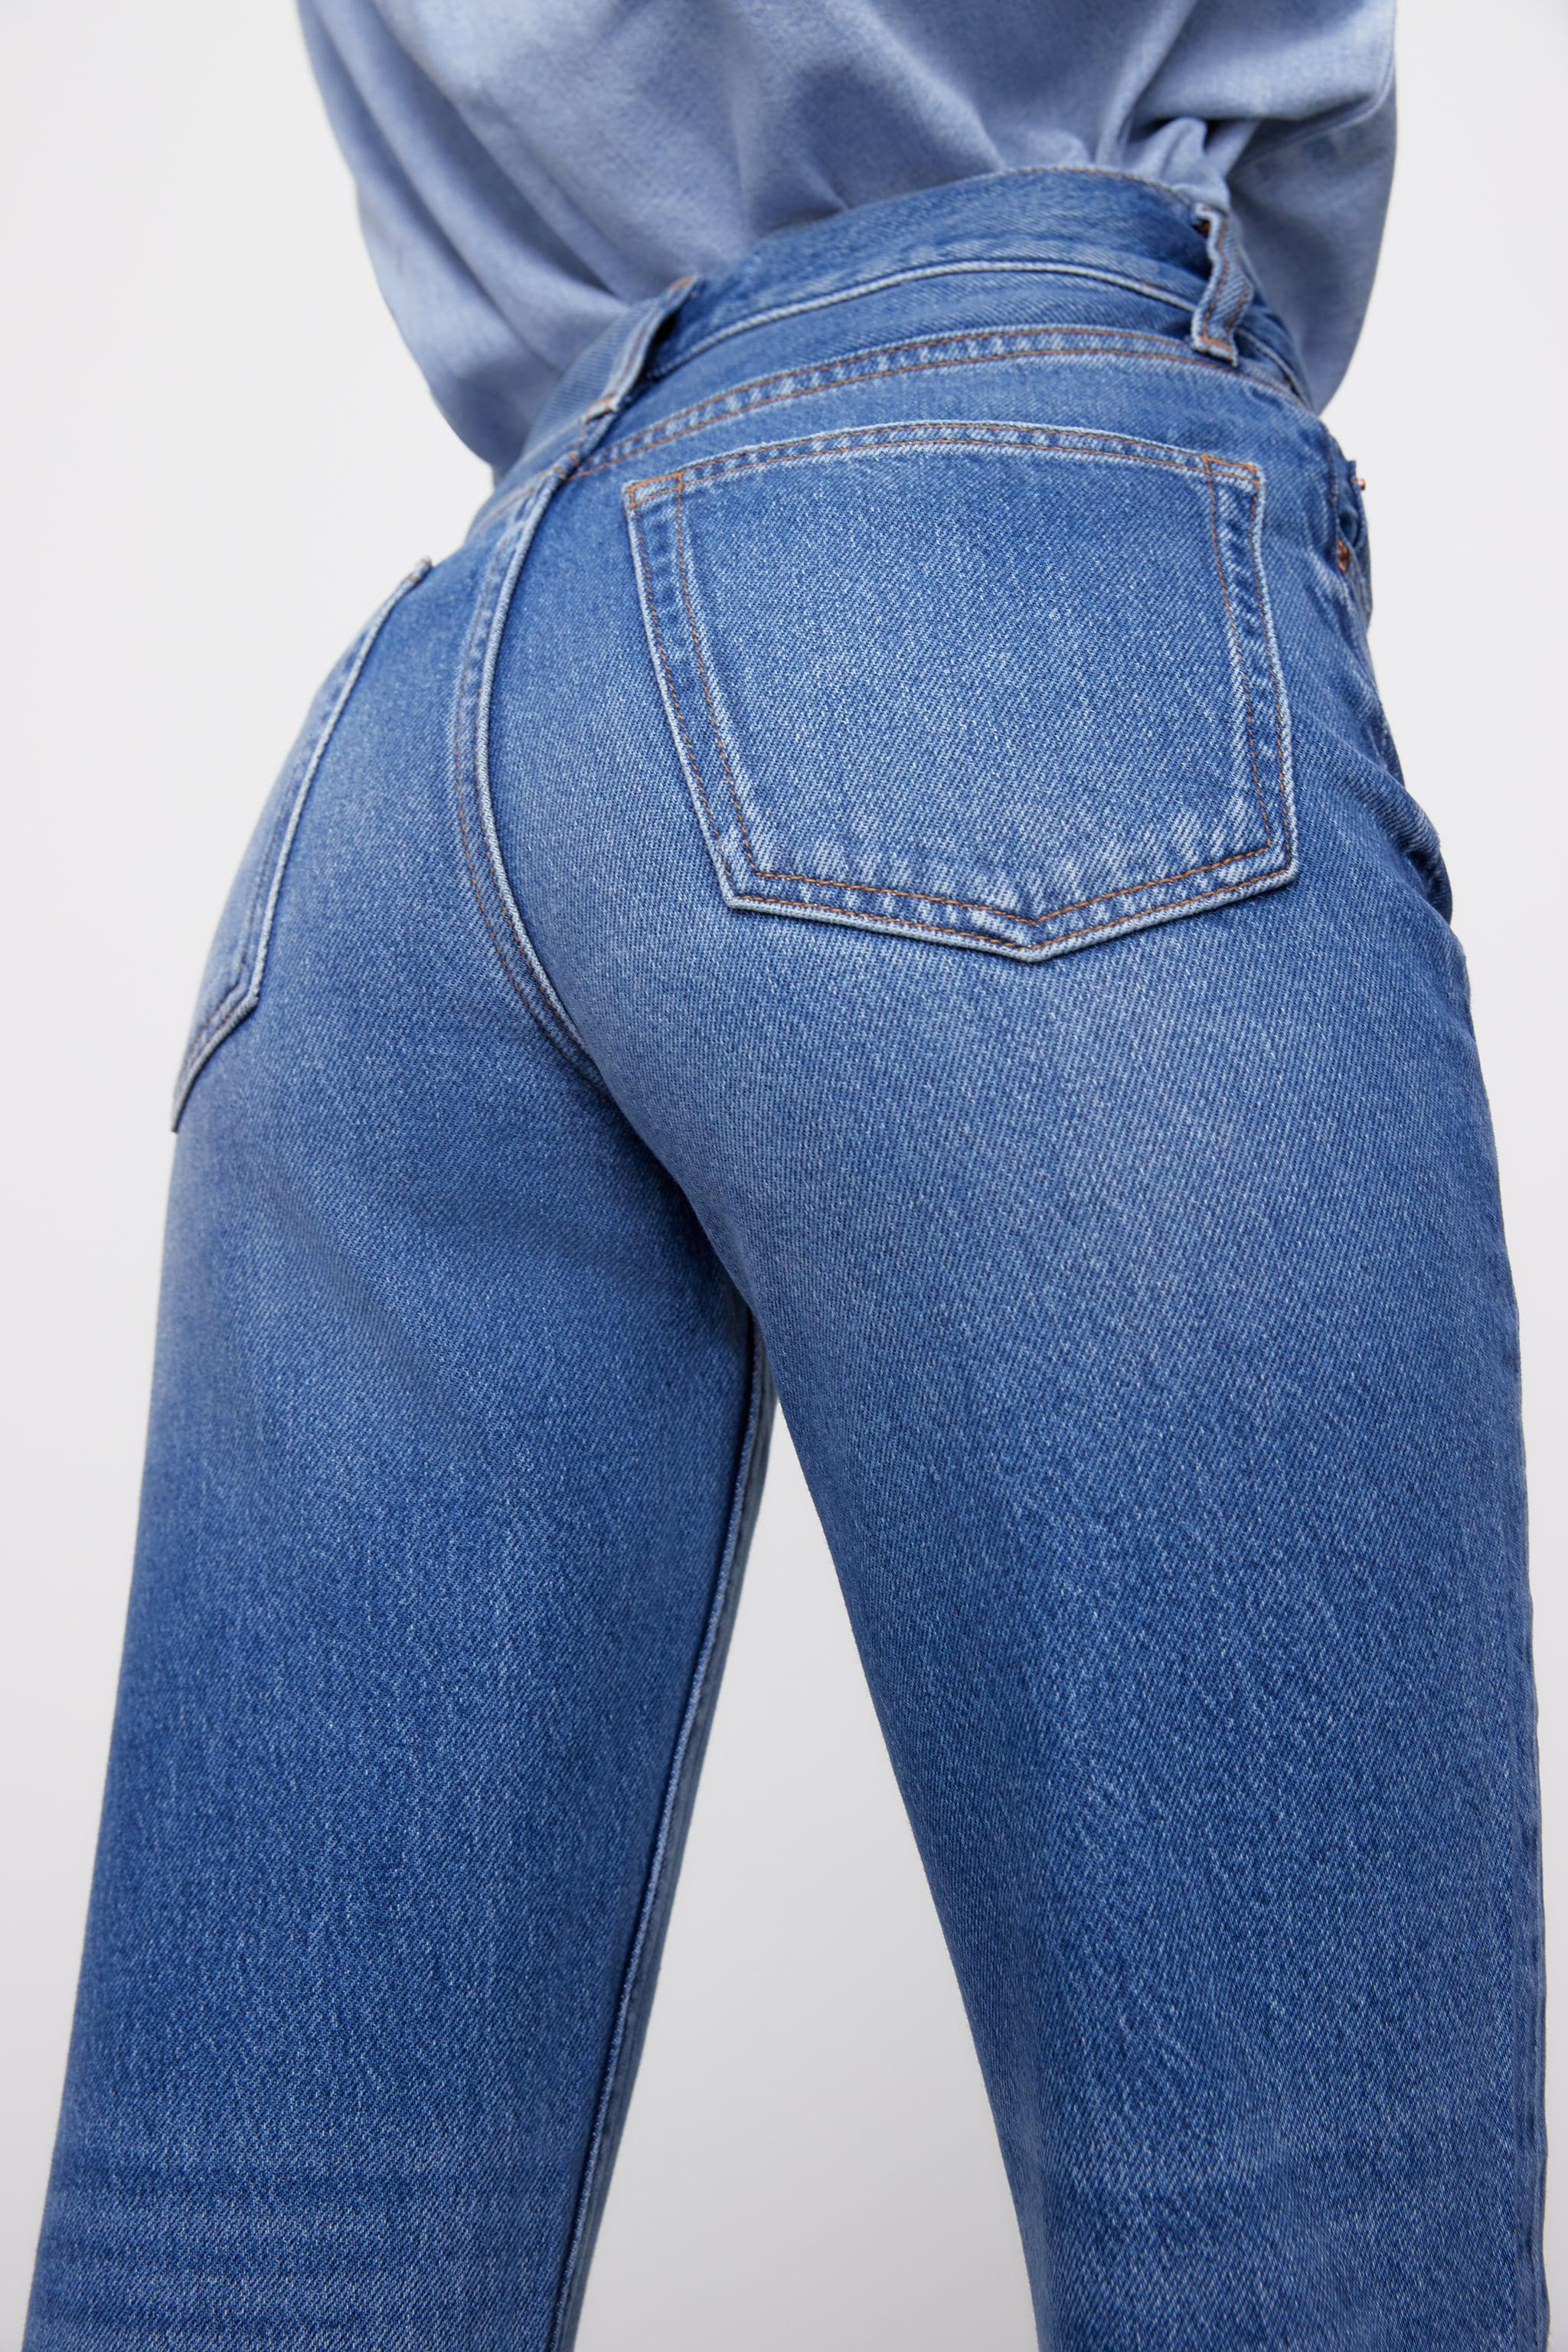 ZW THE ZIA FLARE JEANS 4